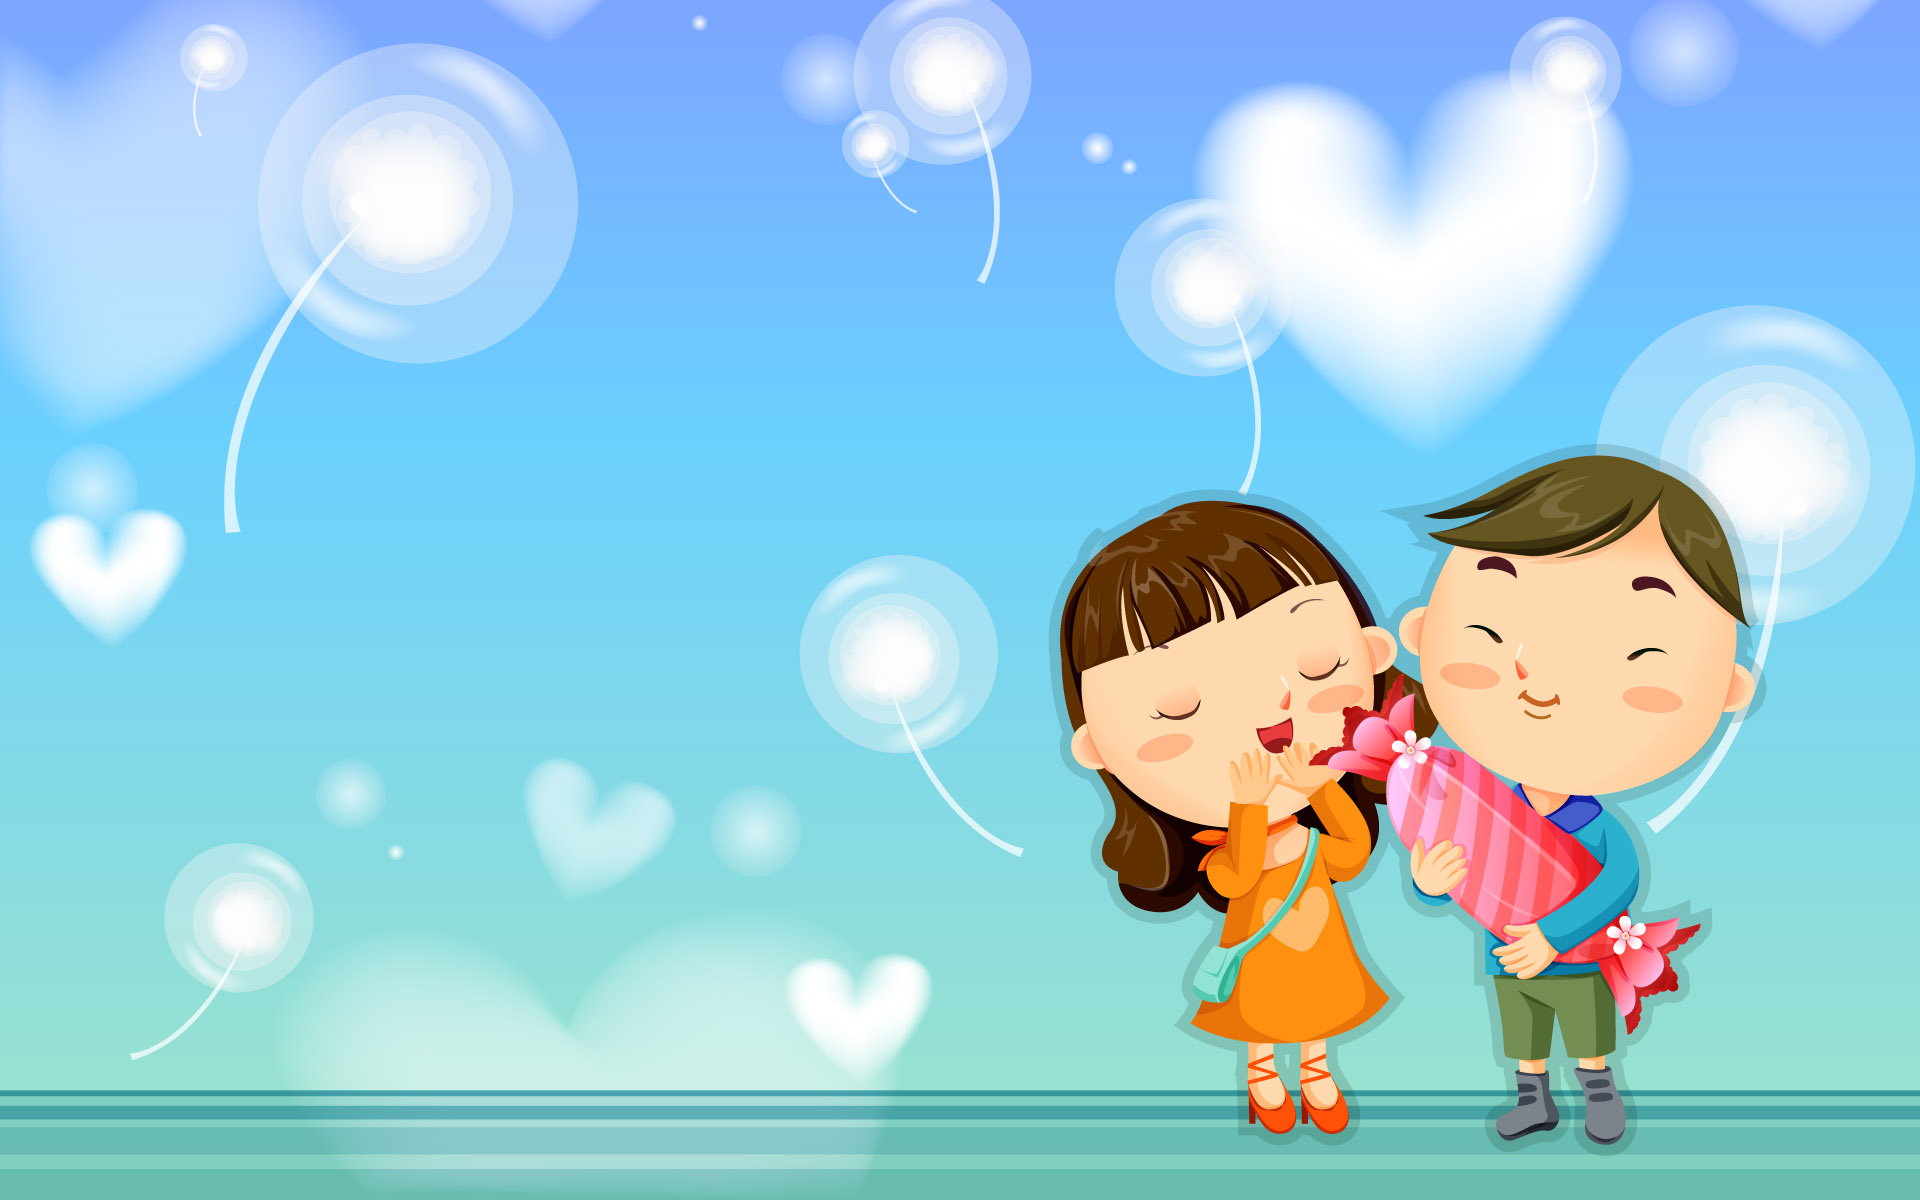 Love Wallpaper cartoon Hd : Love cartoon Wallpaper - WallpaperSafari